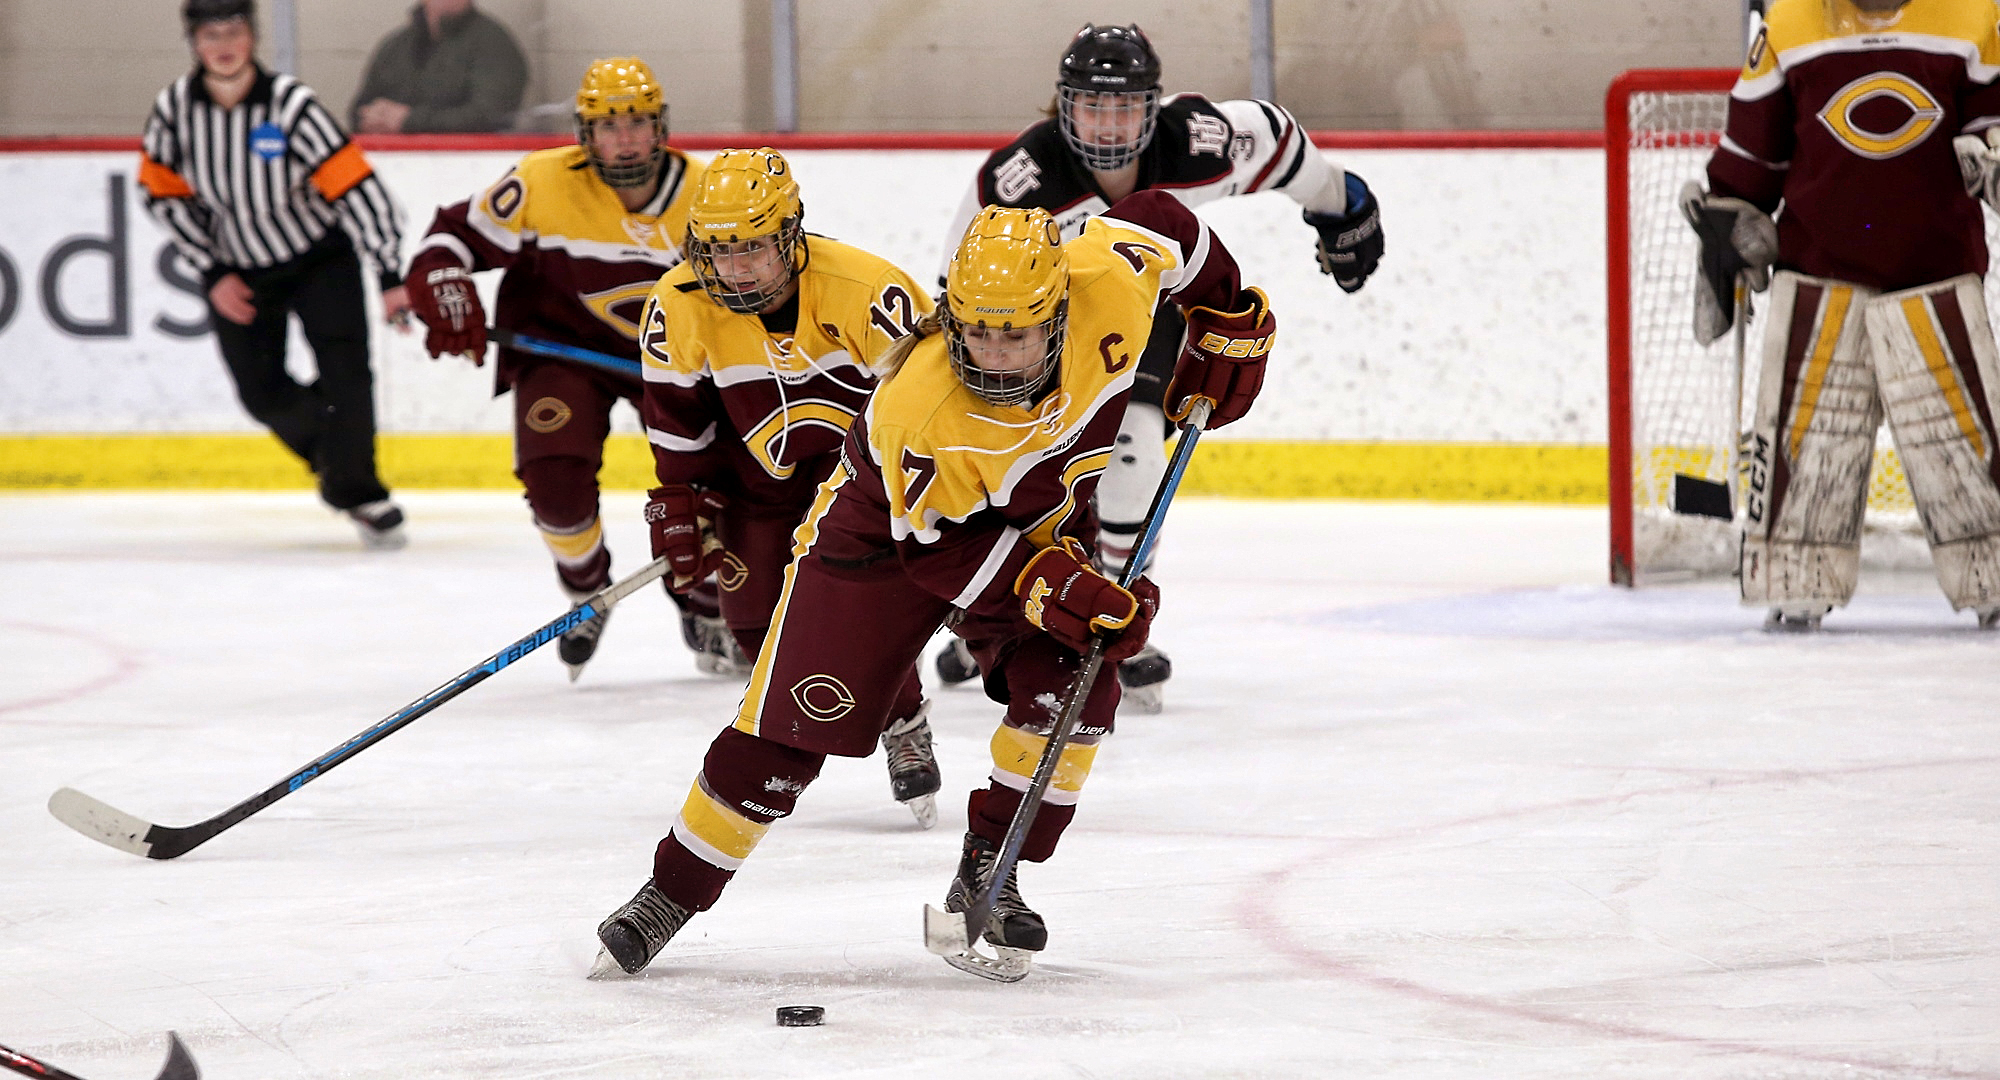 Senior captain Sage Barta carries the puck up the ice during the Cobbers' series finale at Hamline. (Photo courtesy of Ryan Coleman, D3photography.com)